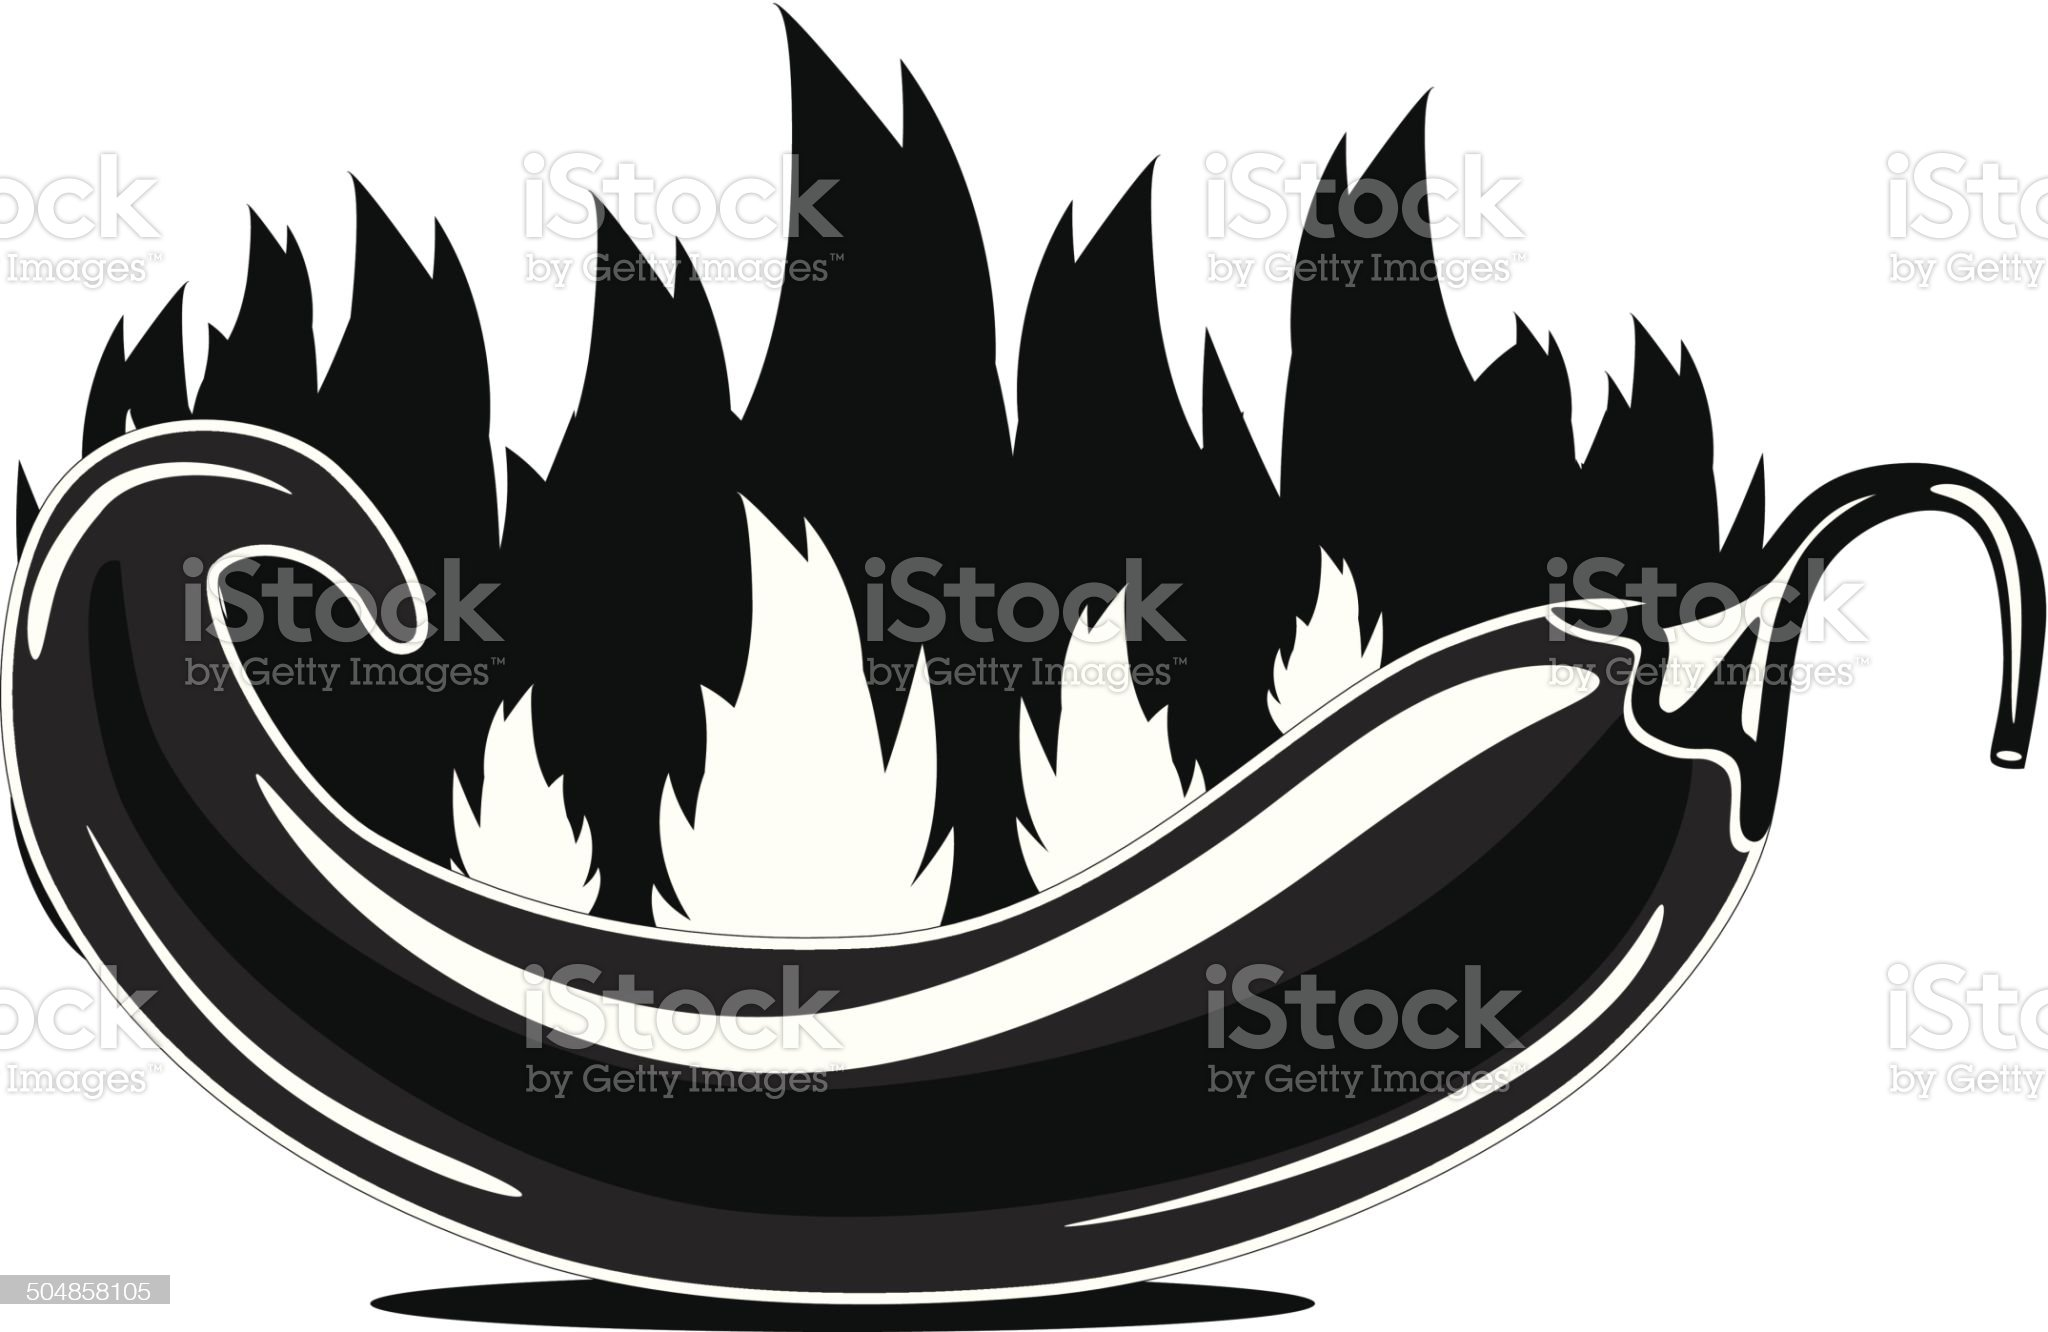 Flaming jalape?o icon royalty-free stock vector art